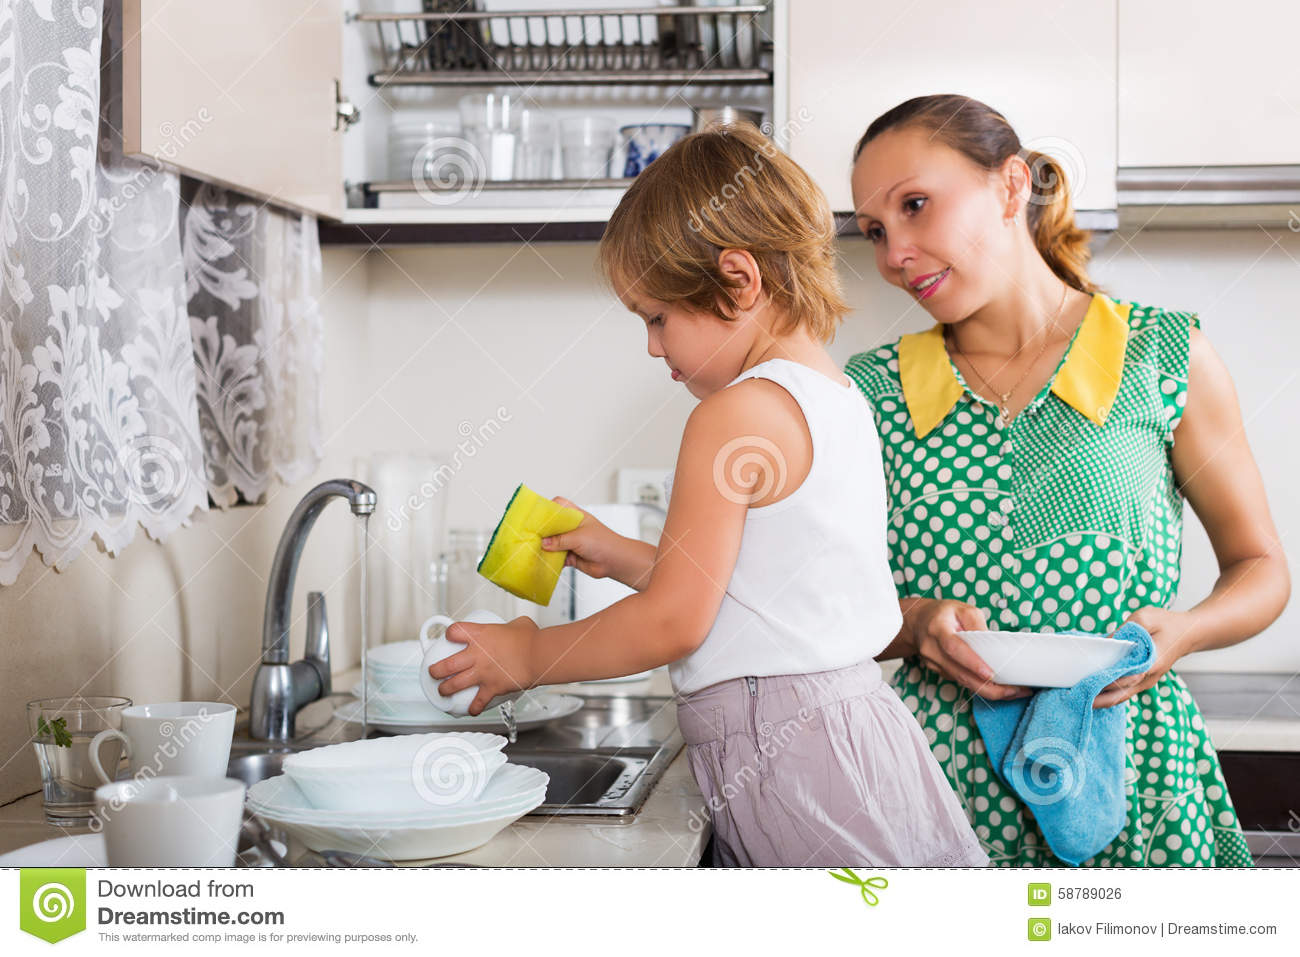 why the women wash the dishes